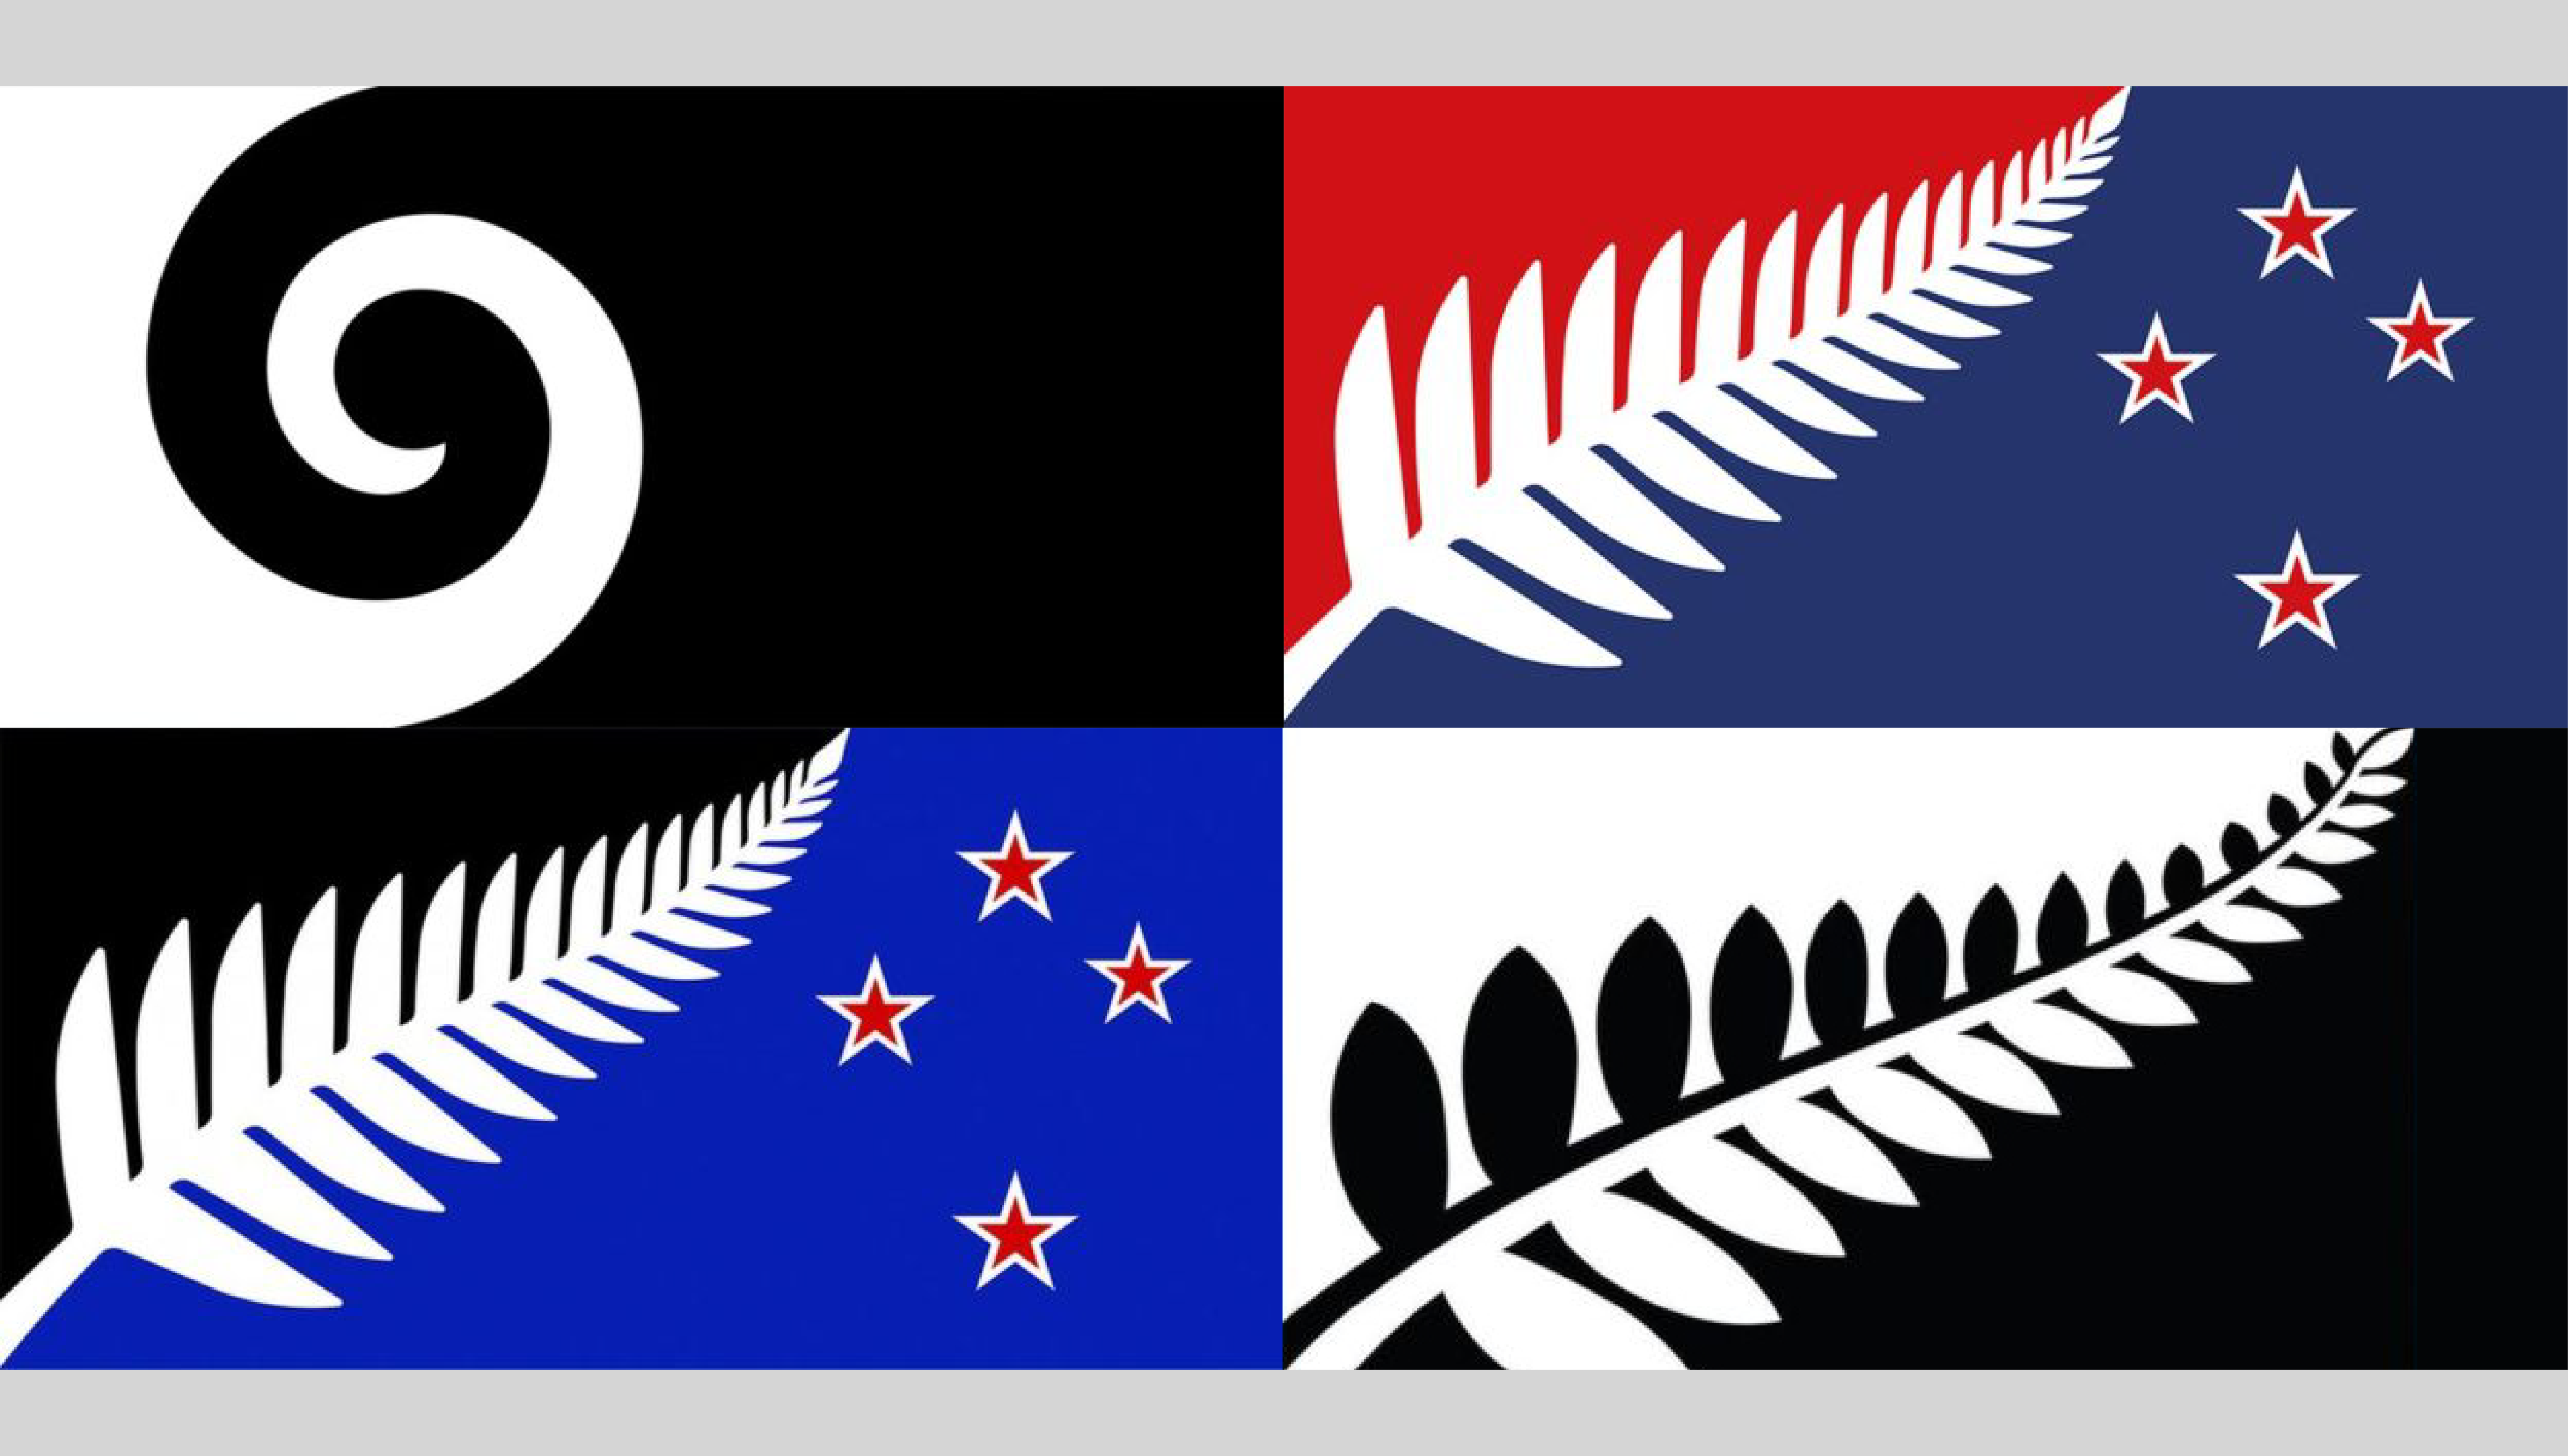 New Zealand flag redesign